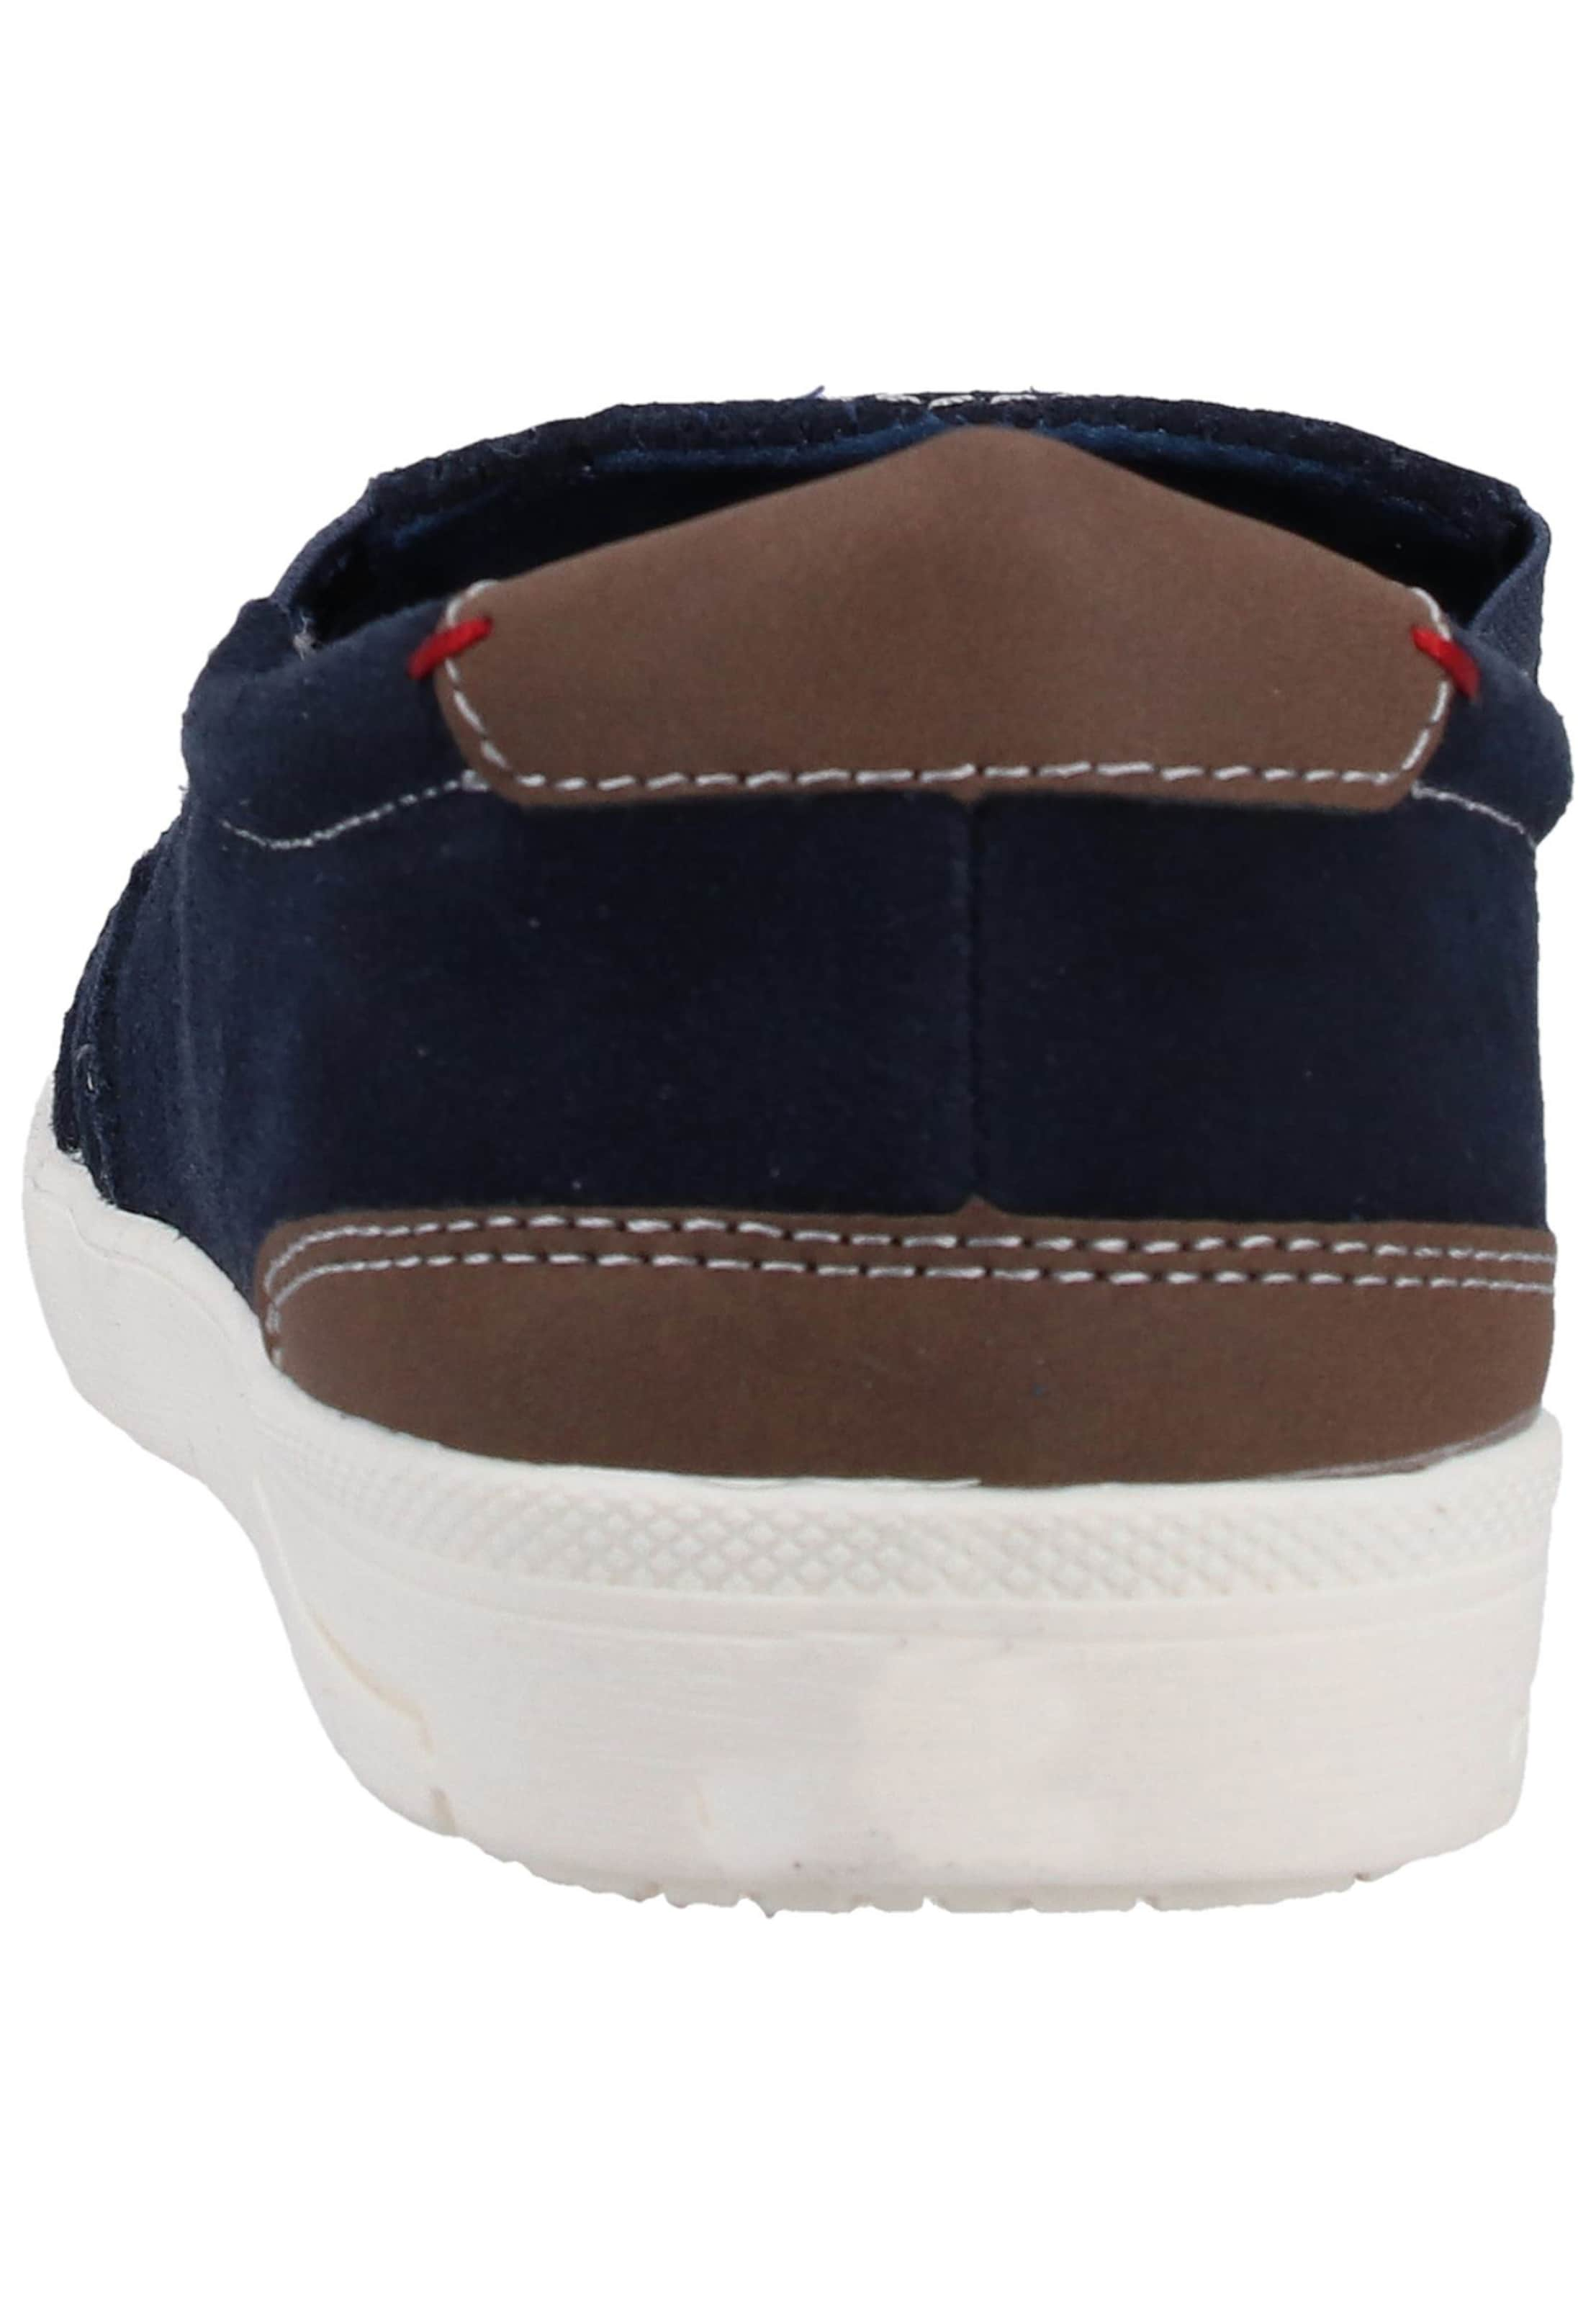 Slipper NavyBraun Red Label In oliver S ZiuOXPk